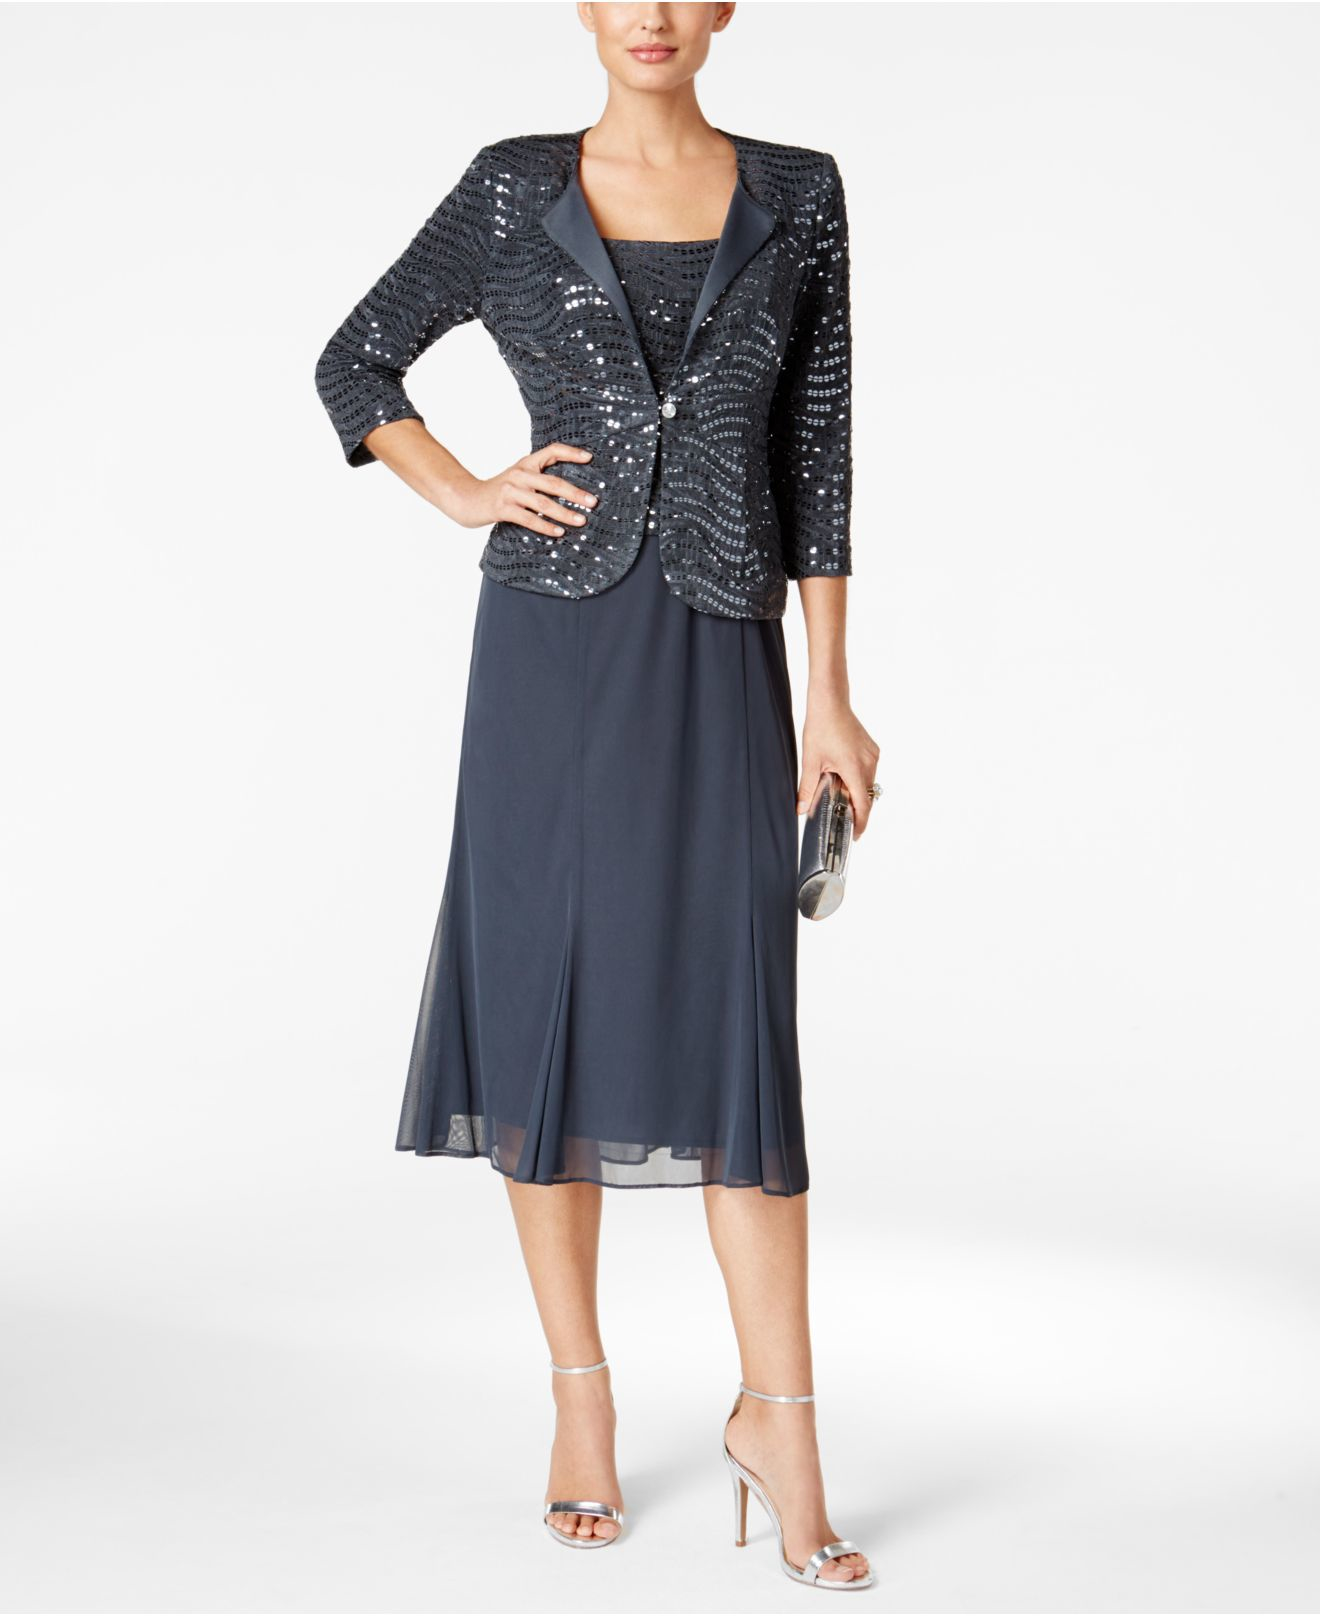 Alex Evenings Sequined Chiffon Midi Dress And Jacket In Blue (Gray) | Lyst